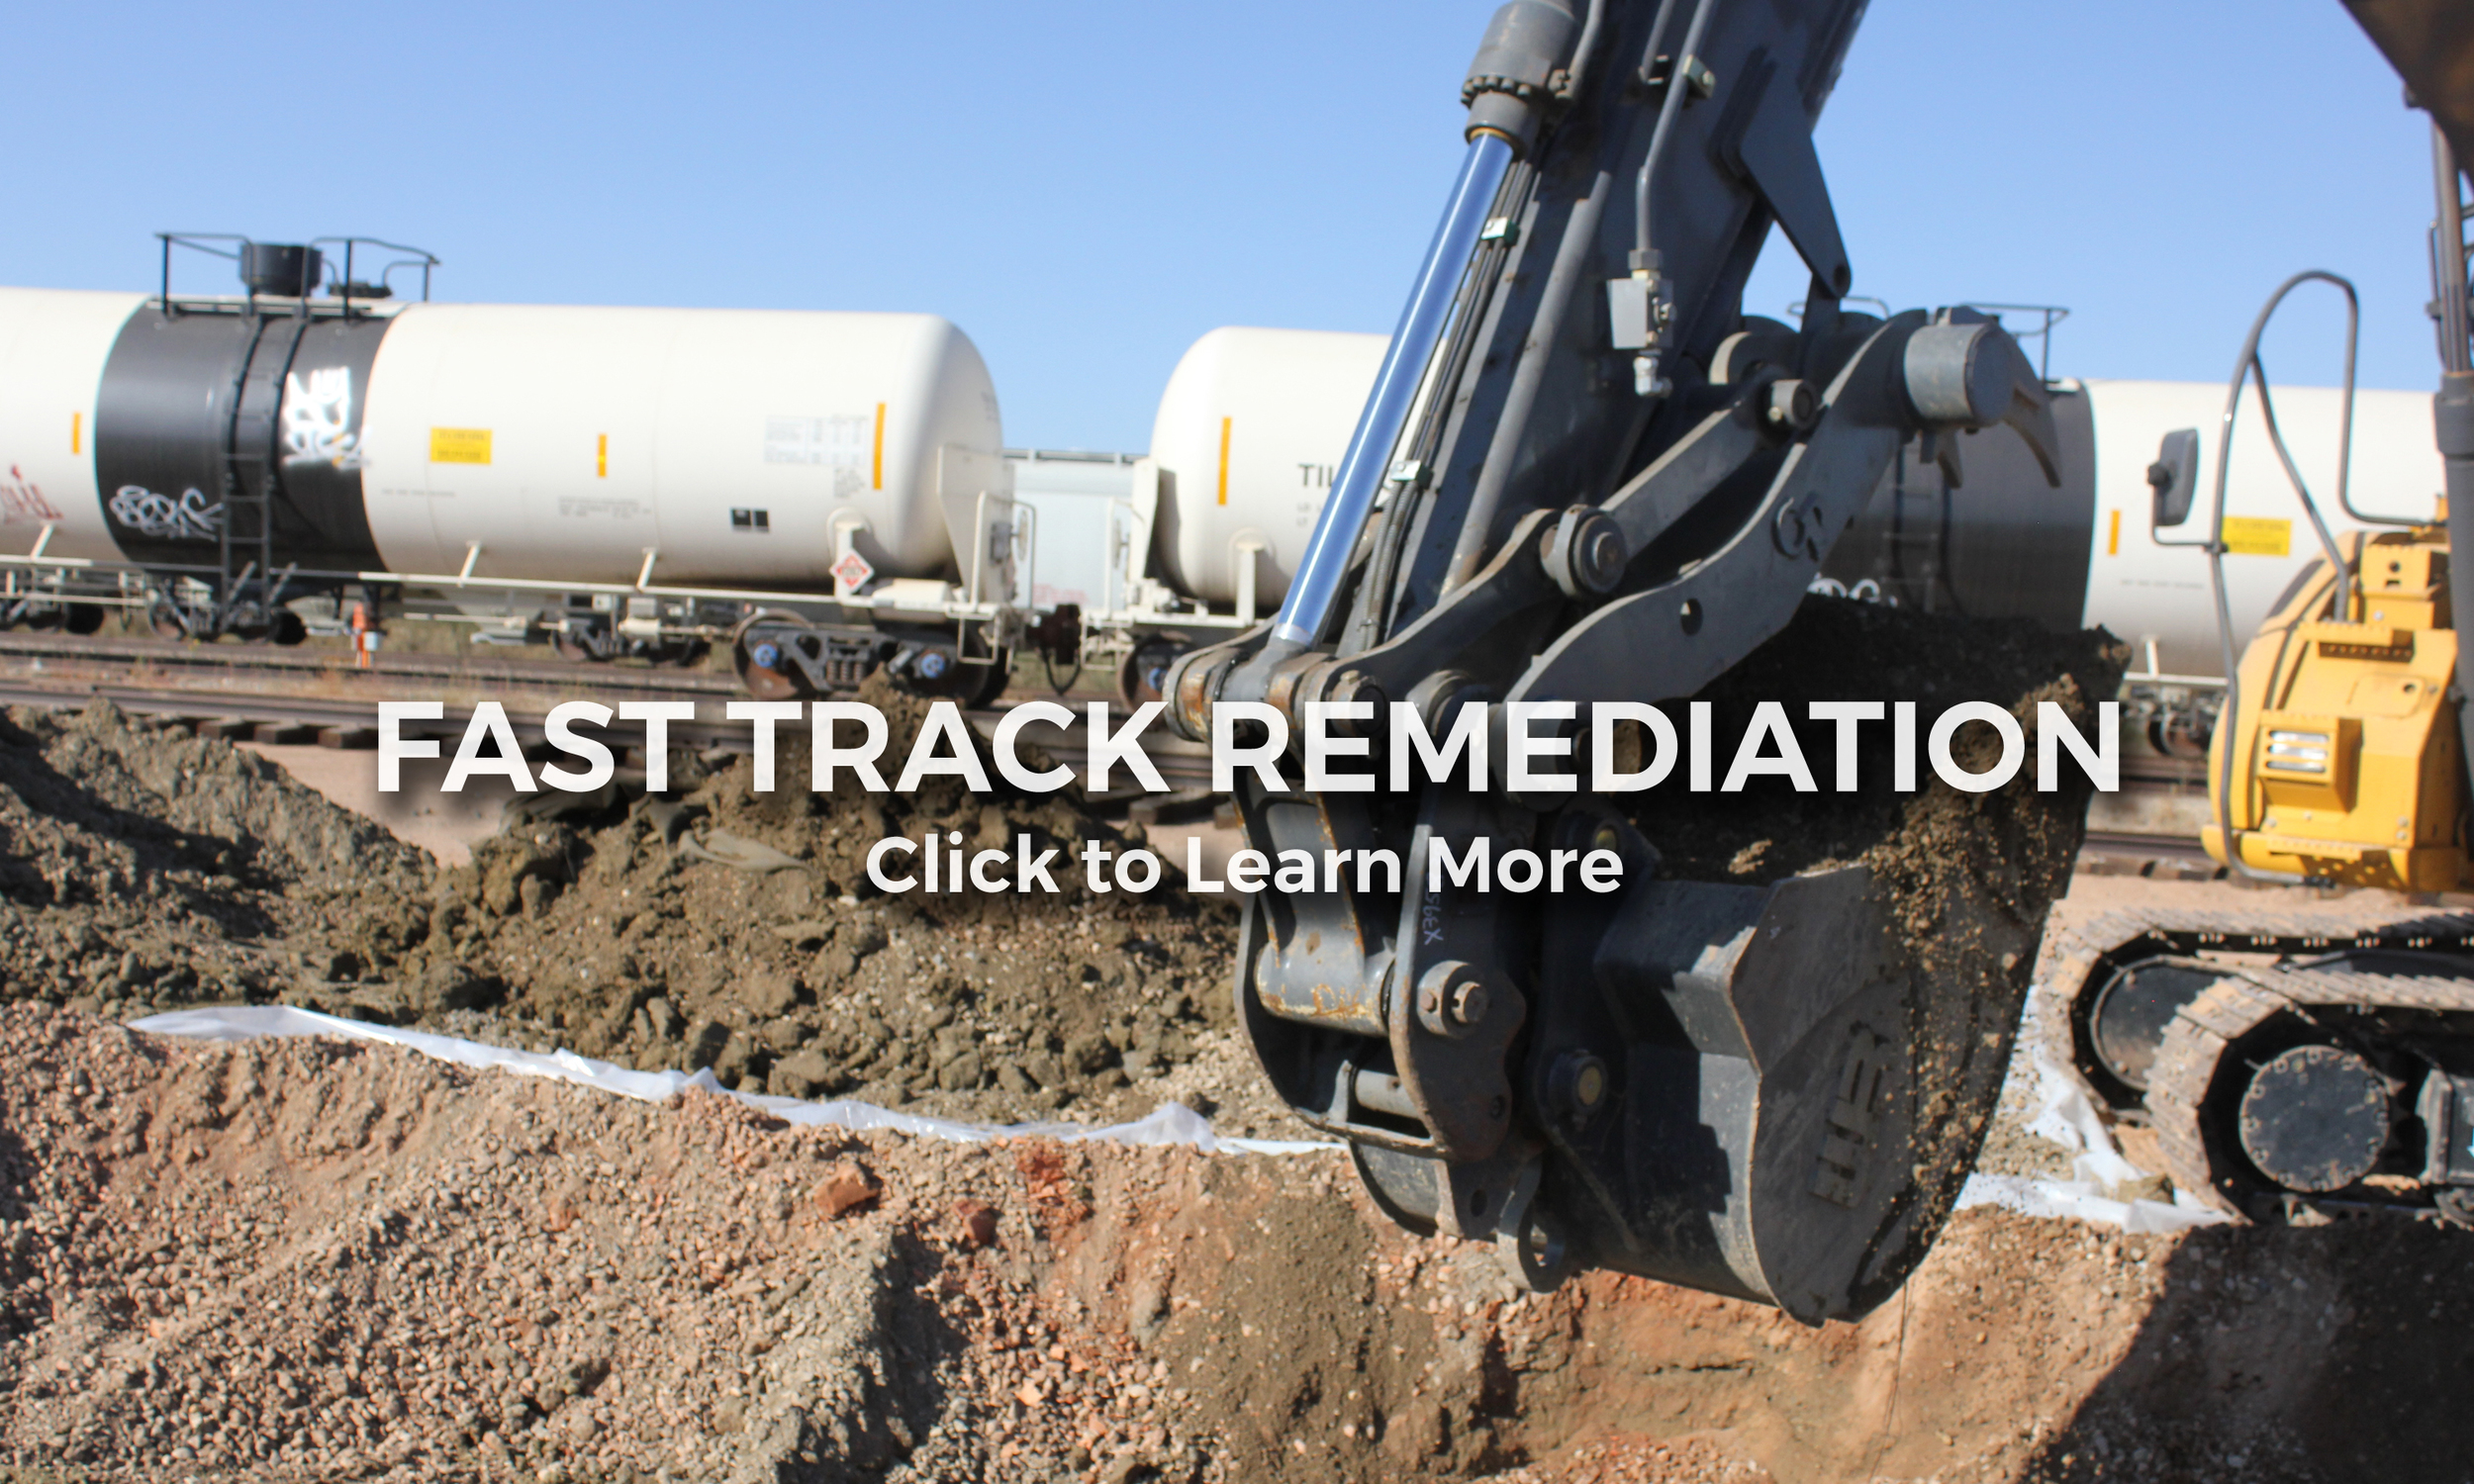 FAST TRACK REMEDIATION